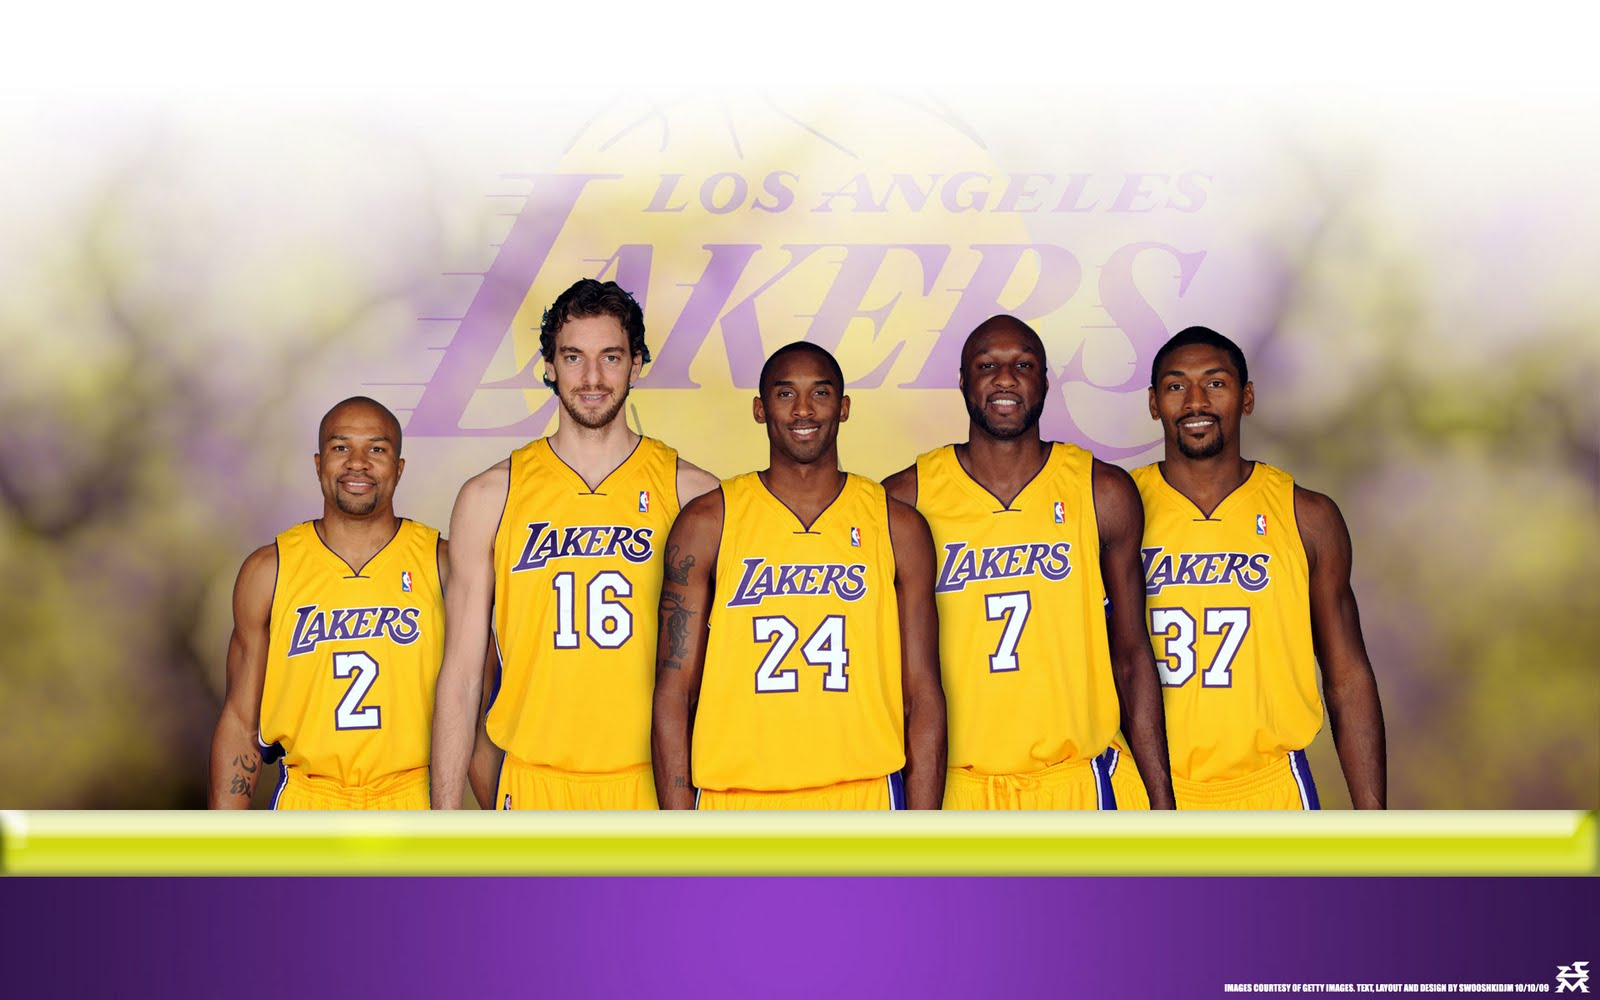 http://2.bp.blogspot.com/_FUqunw1CcGY/TQ5MWLvxhtI/AAAAAAAAAds/jENvEgpaSRM/s1600/LA-Lakers-2010-Starting-Five-Widescreen-Wallpaper.jpg